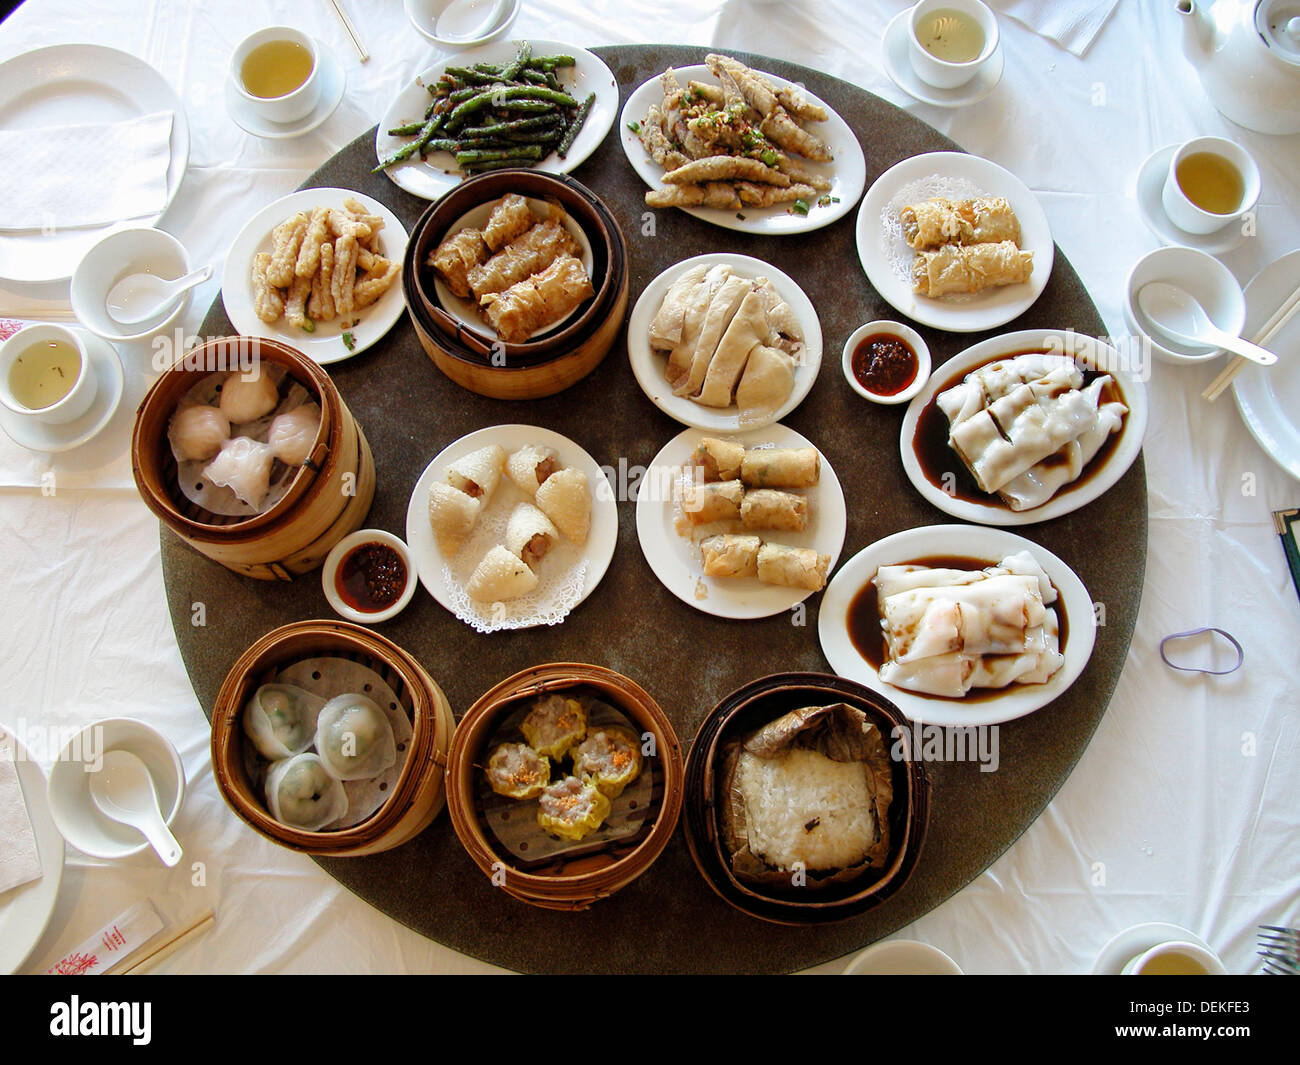 Chinese food in a restaurant. Vancouver, British Columbia, Canada Stock Photo